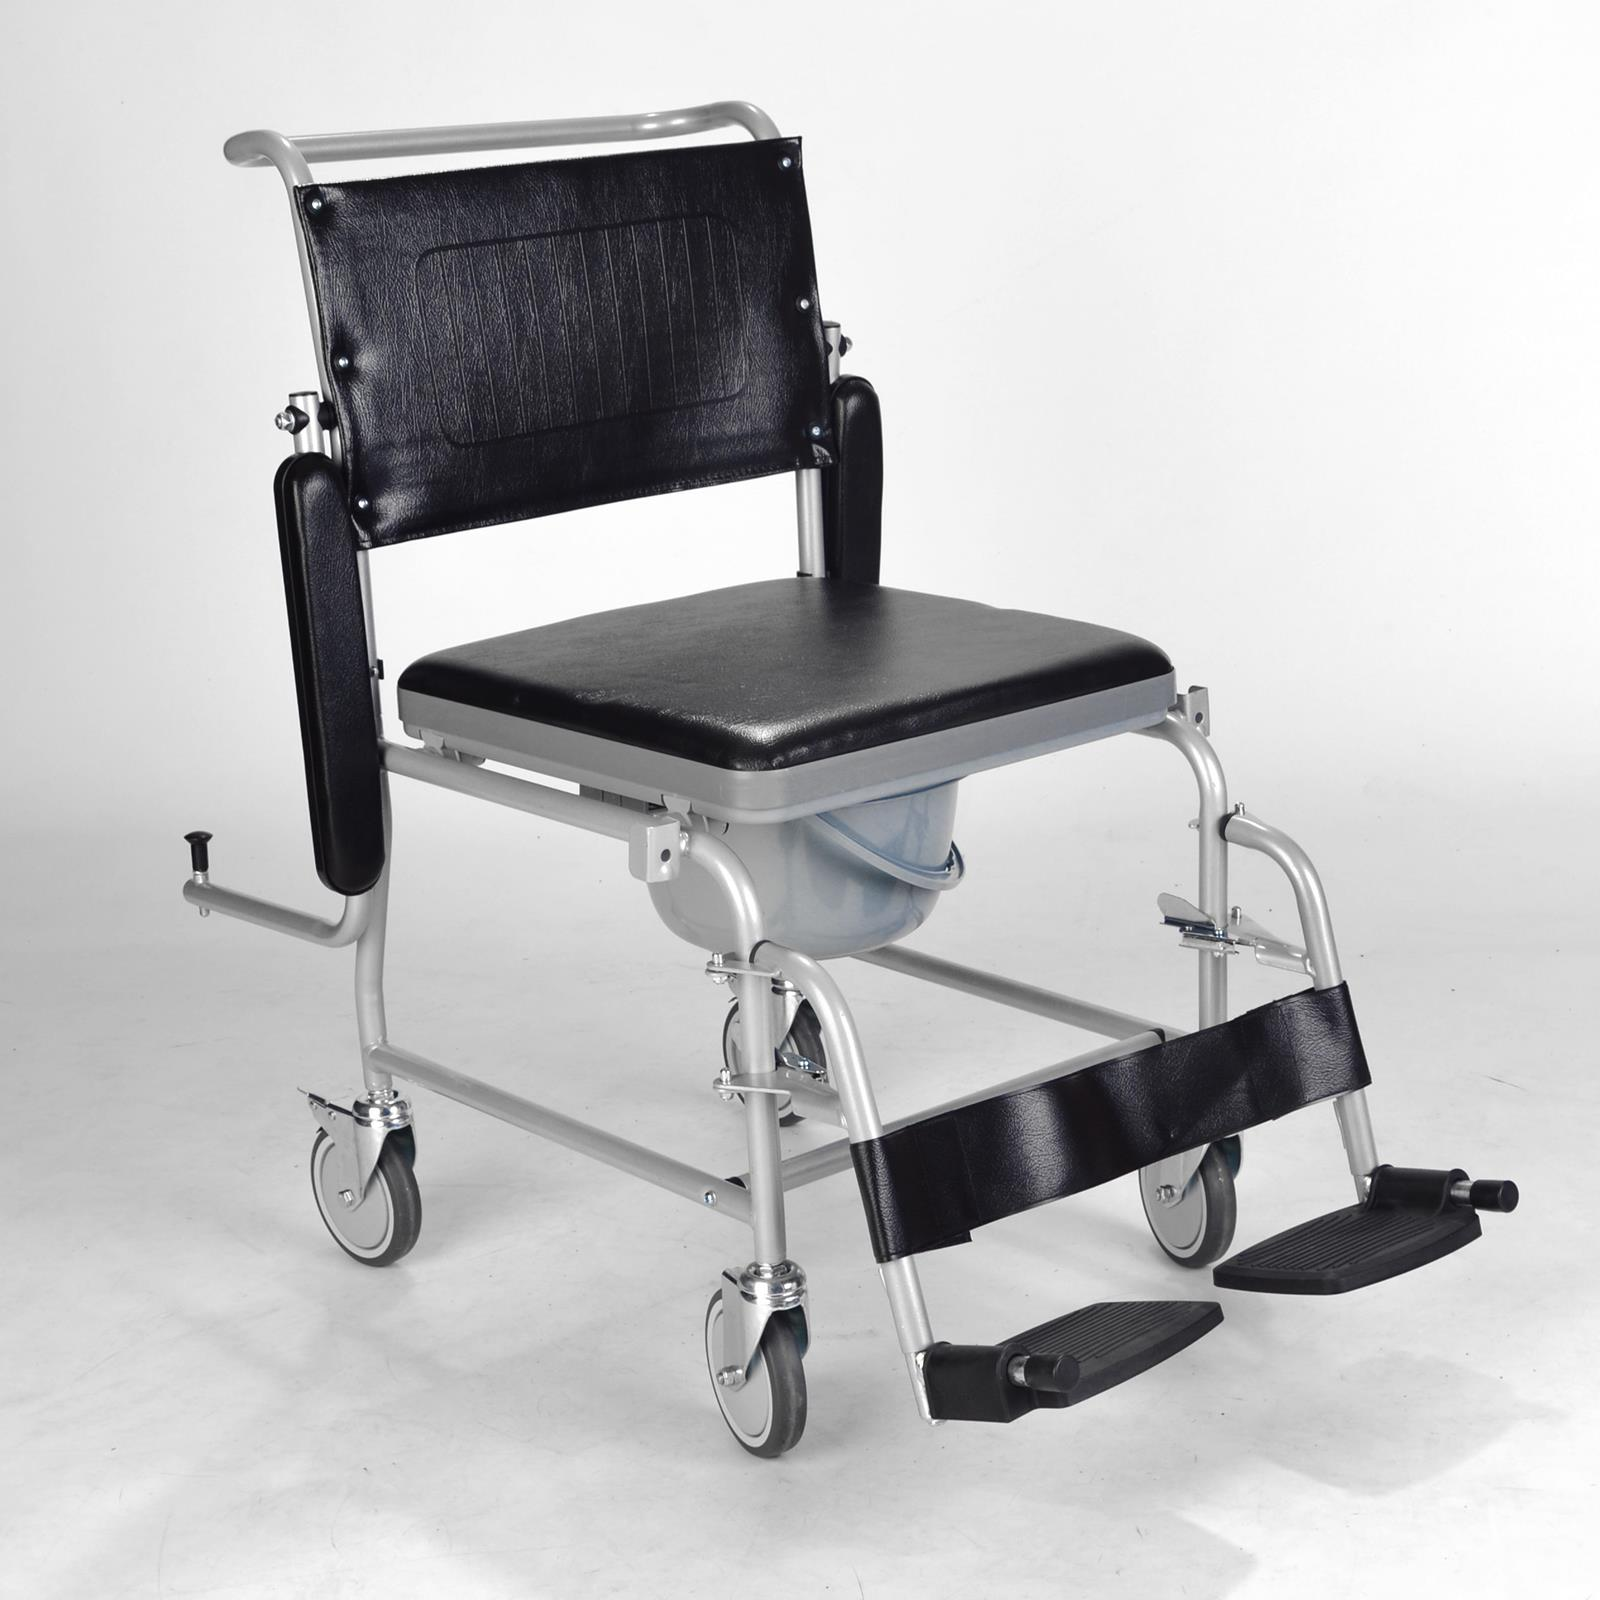 commode chair uk folding ace hardware mobile wheeled with brakes